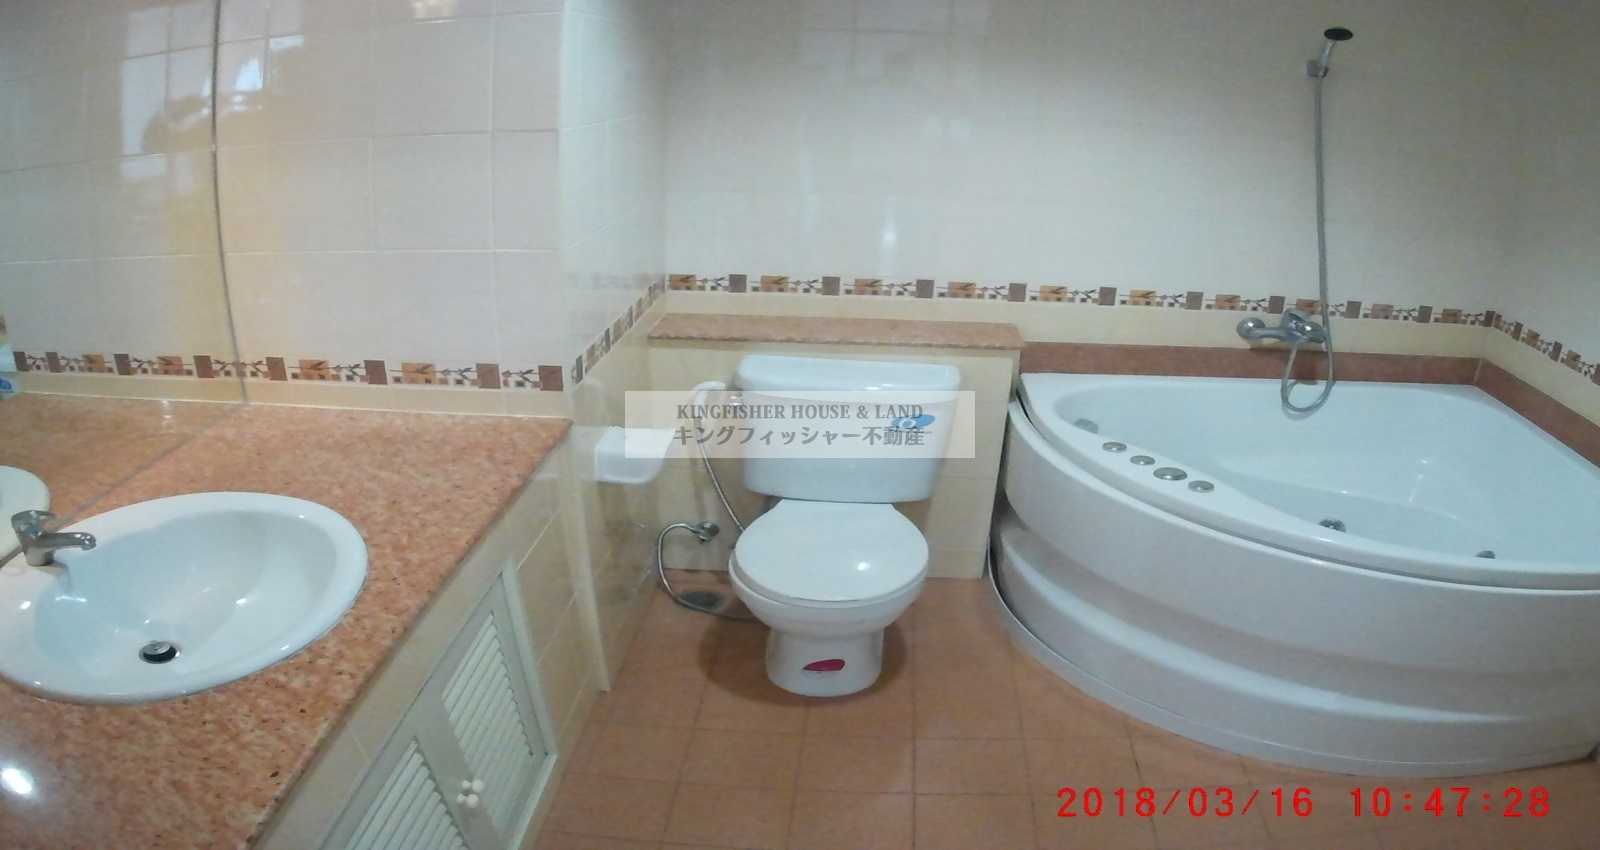 2 Bedrooms, Condominium, For Rent, 2 Bathrooms, Listing ID 1238, Sriracha, Thailand, 20110,